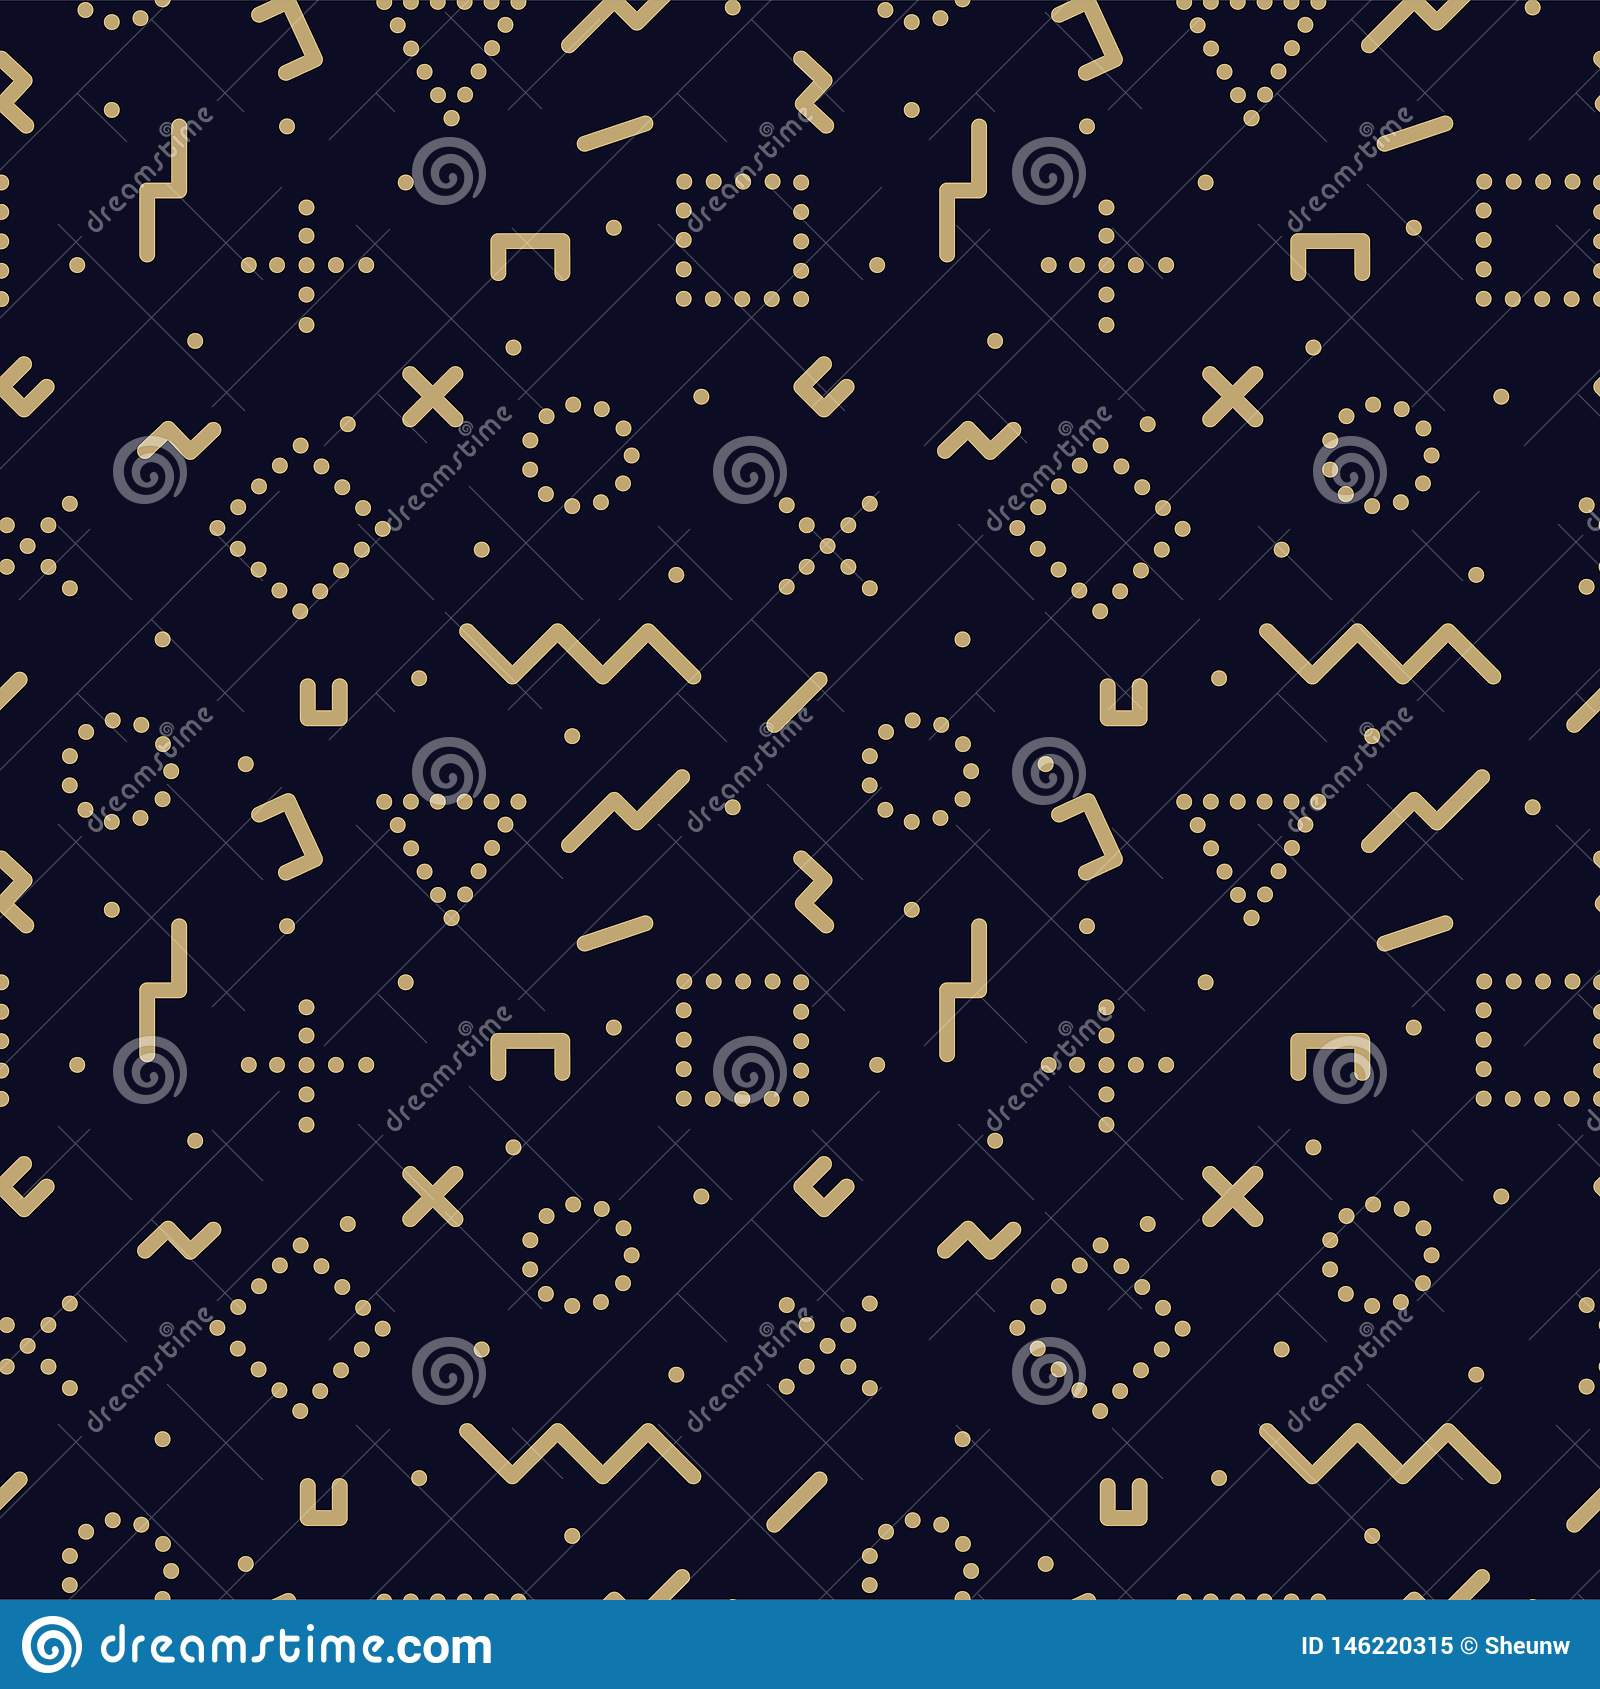 Vector Trendy Seamless Geometric Pattern - Memphis Design